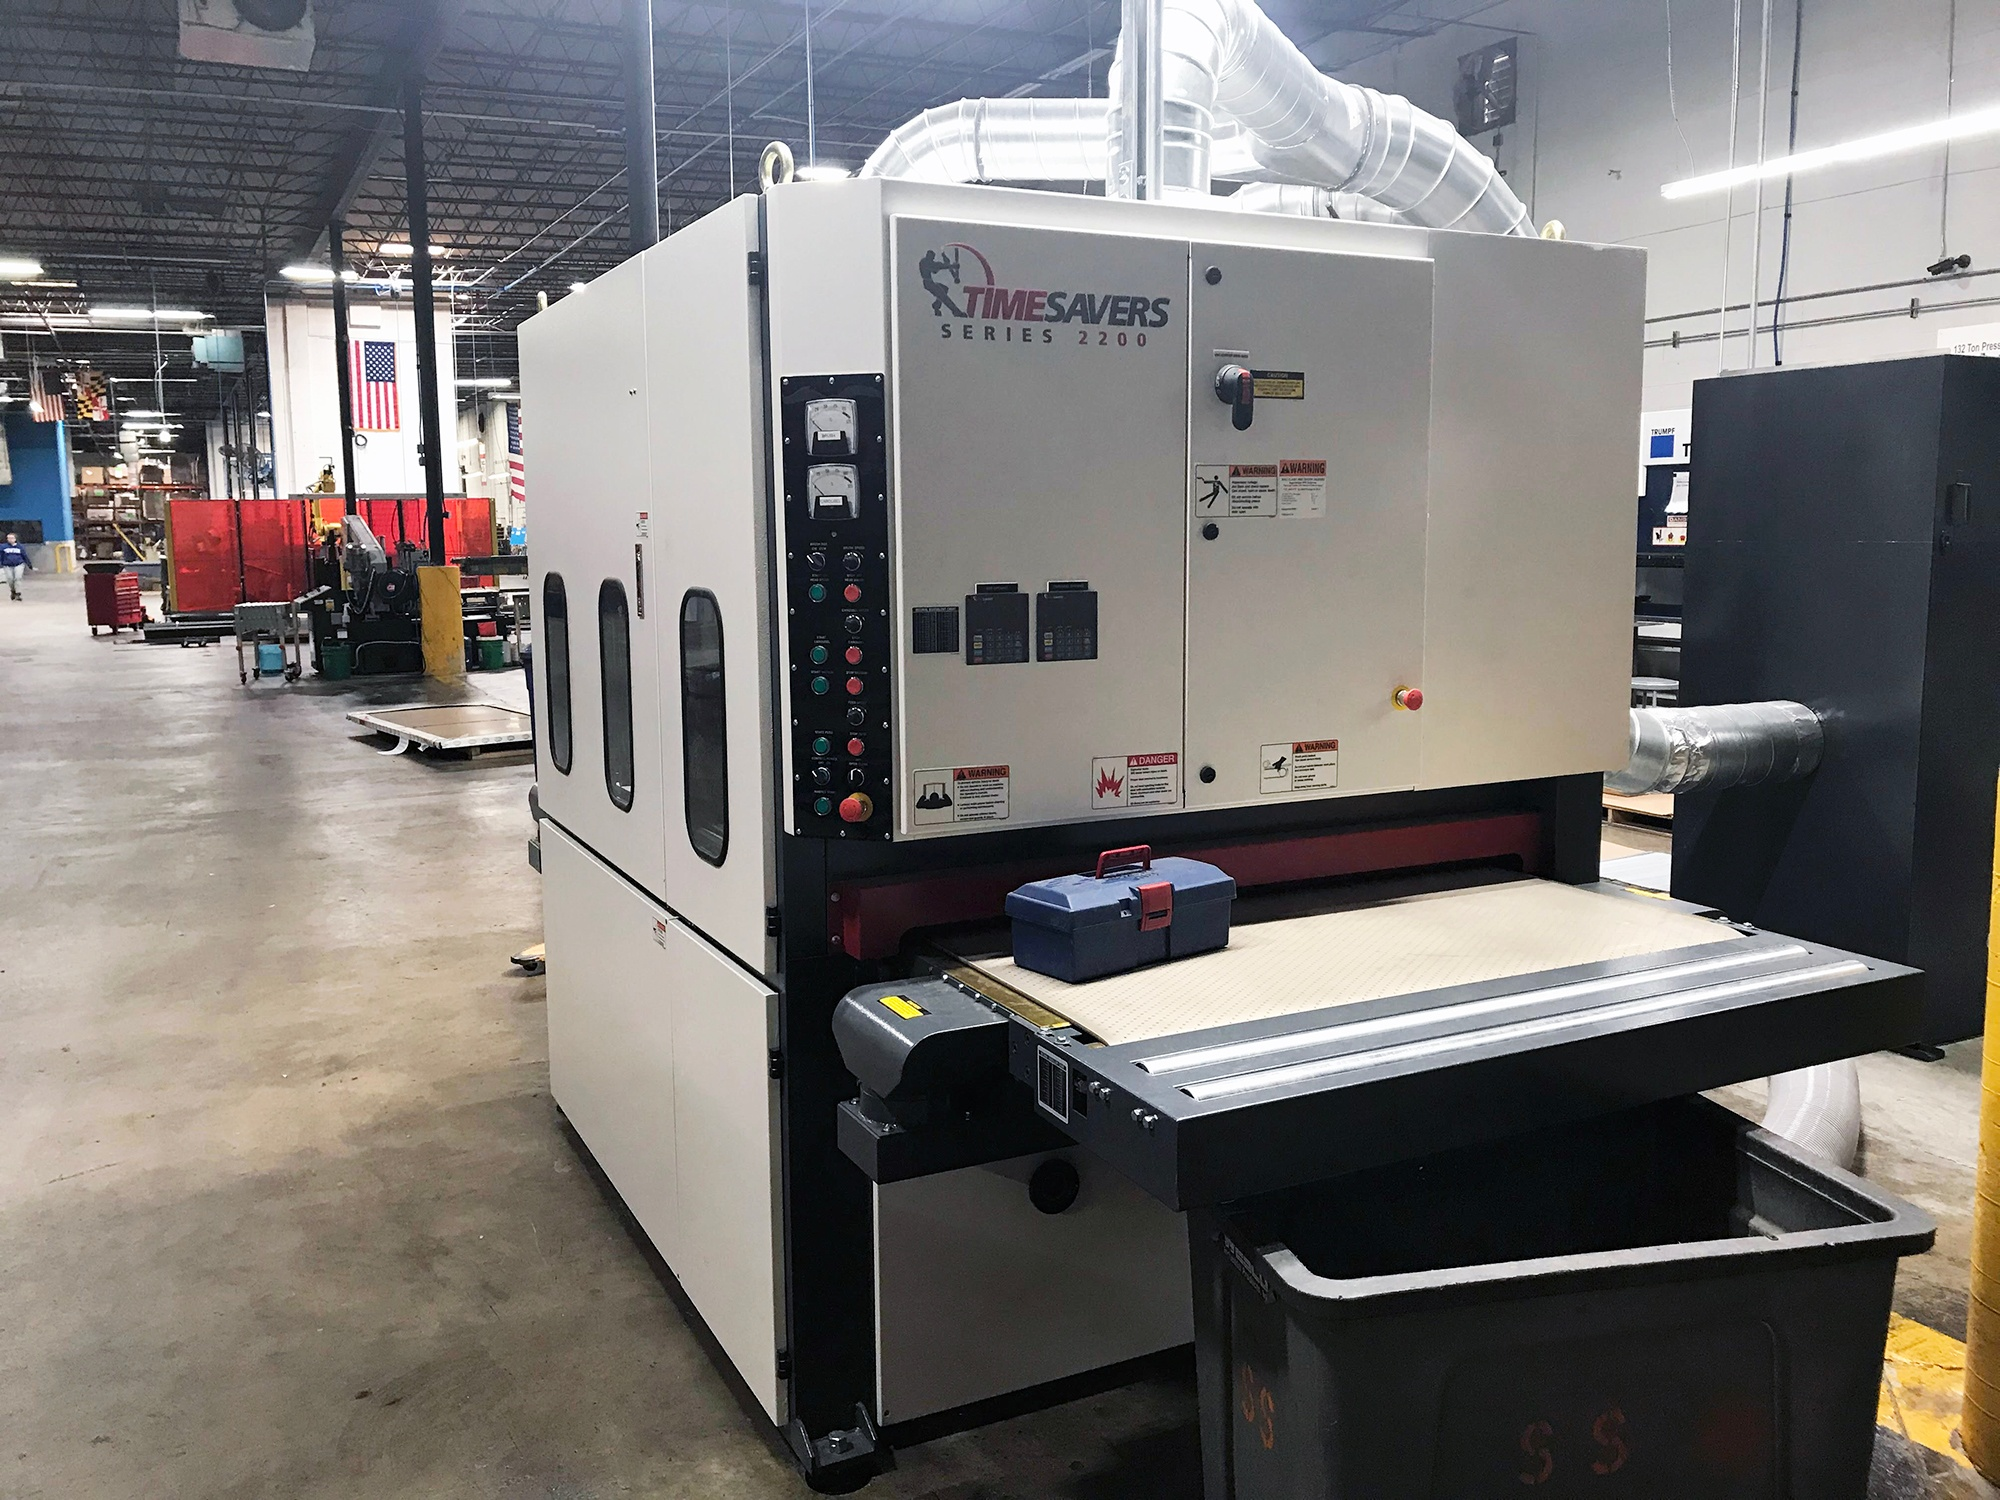 Marlin Steel Adds Timesavers 2200 Series Deburring Machine